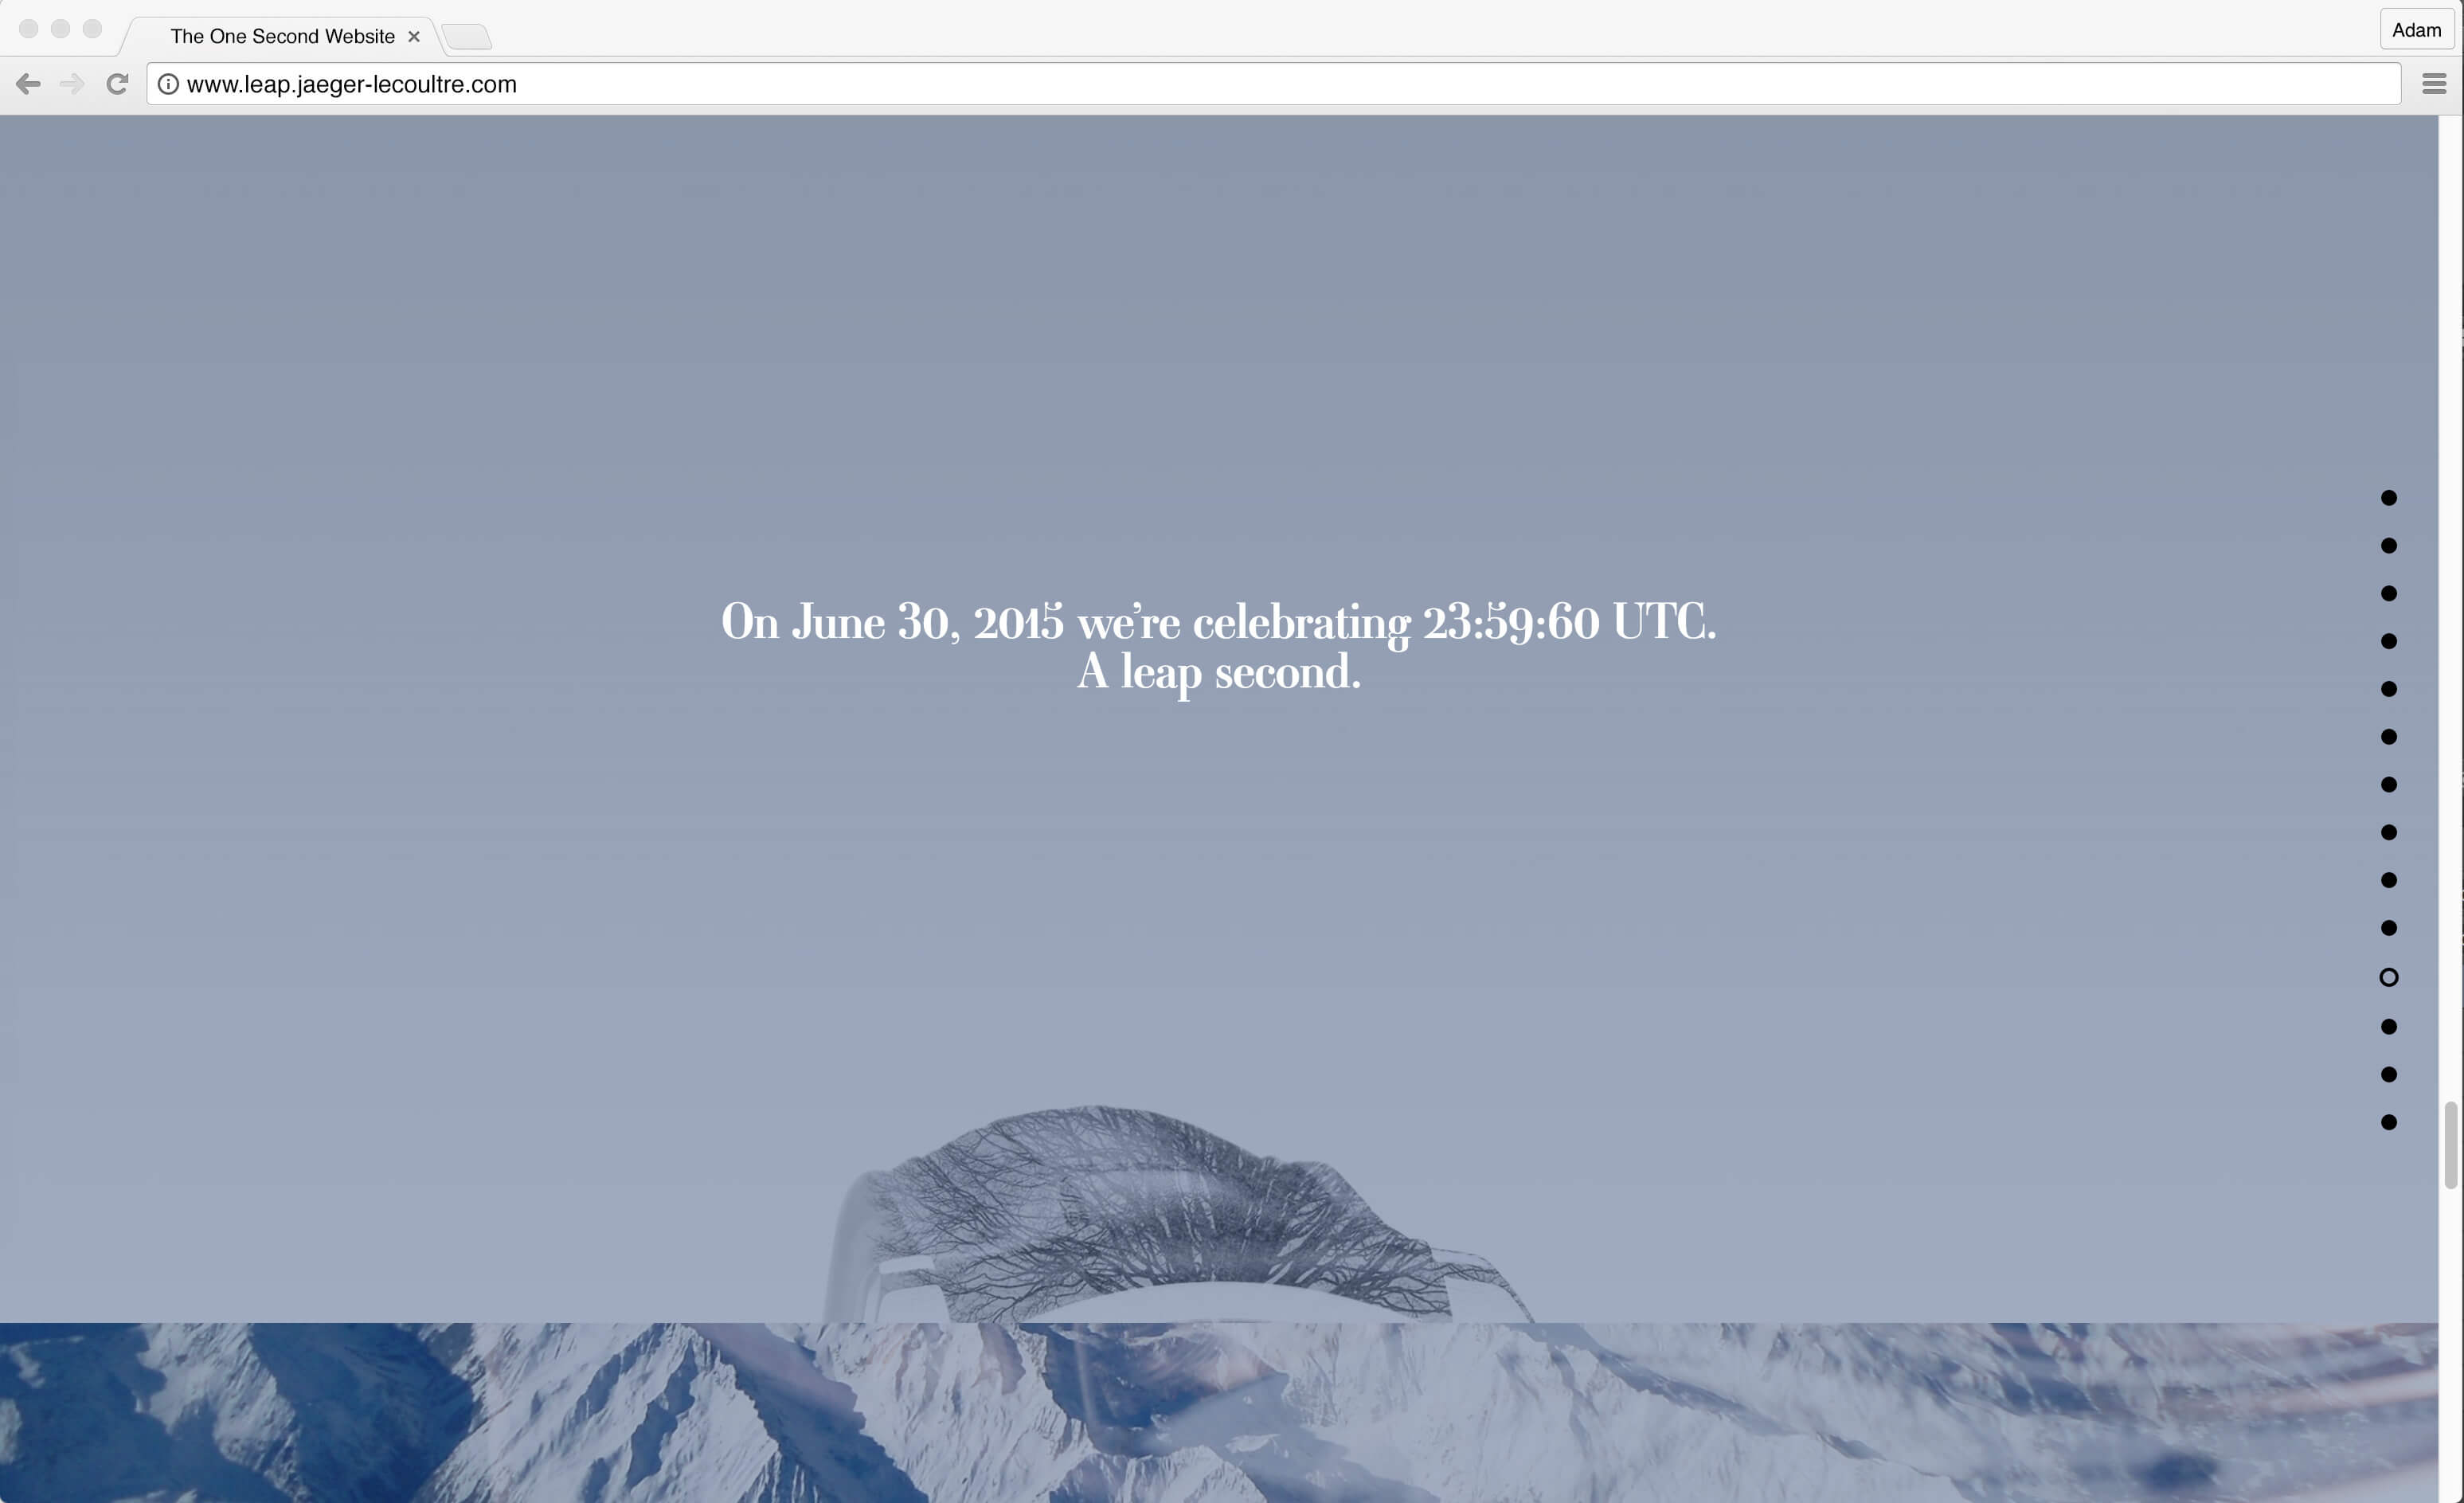 Jaeger-LeCoultre: 1 Second Website is a project that celebrate Jaeger-LeCoultre's history of precision watchmaking and the chronological phenomena of the lean second. I was responsible for the concept, copywriting and service design.